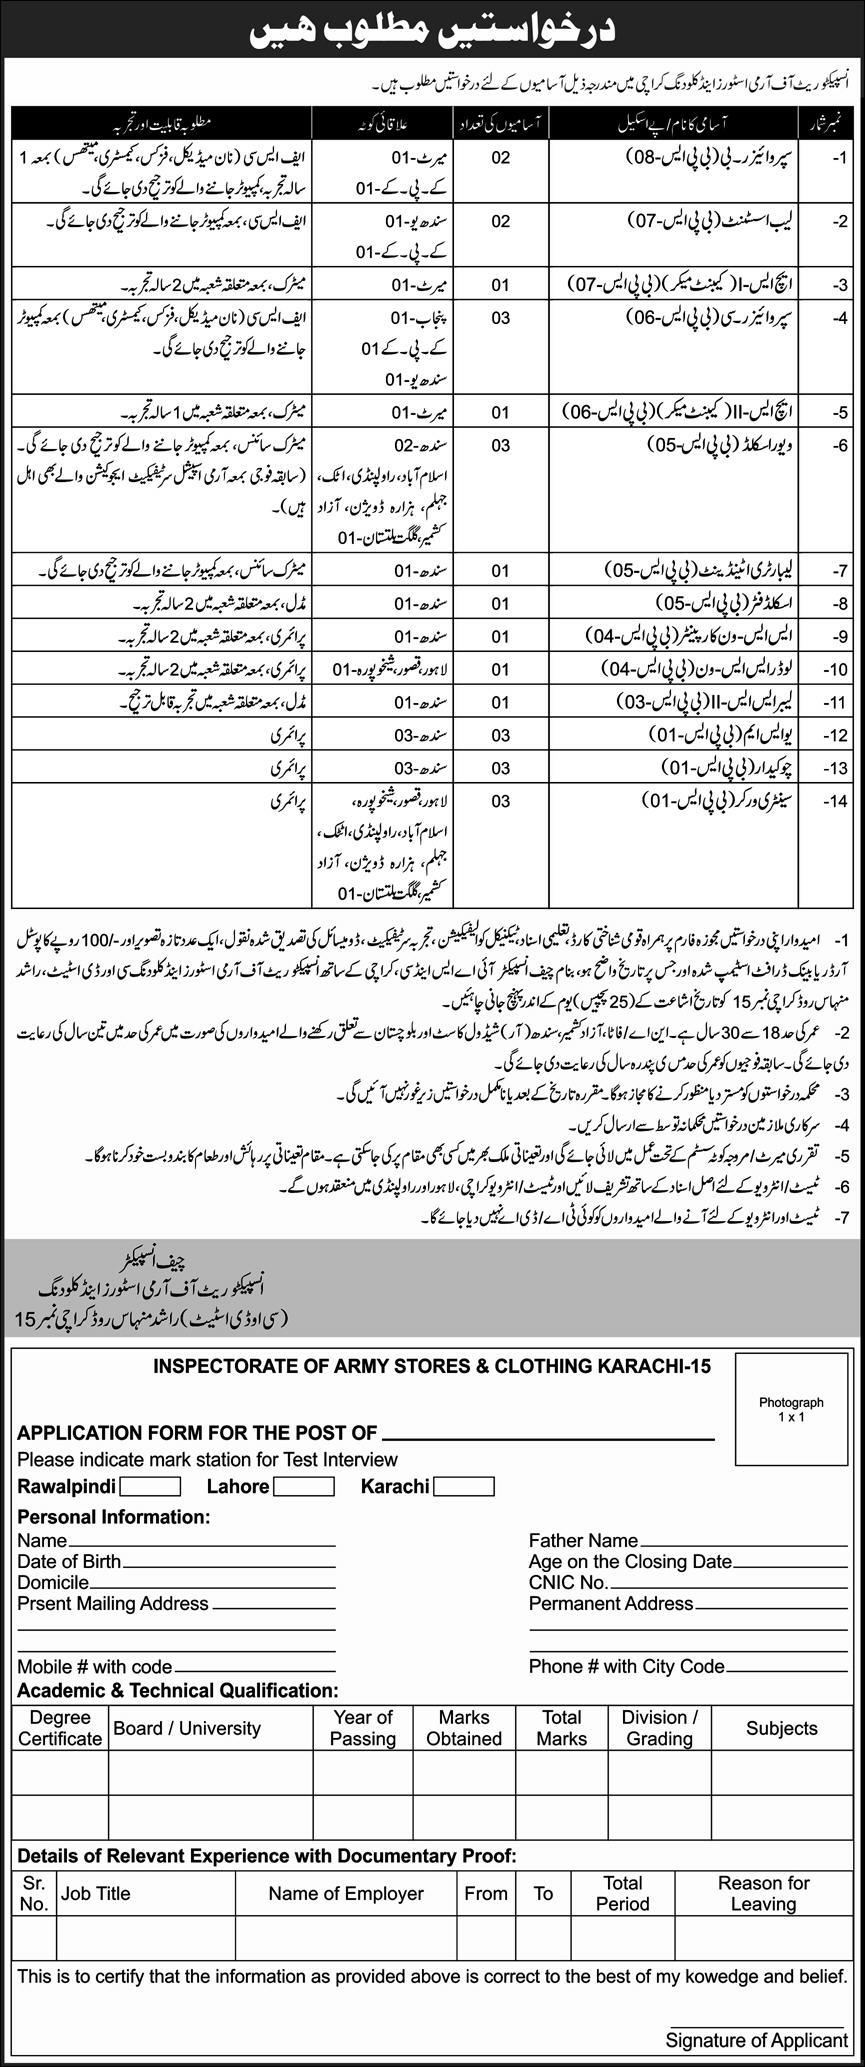 Inspectorate of Army Stores and Clothing Jobs in Karachi 2021